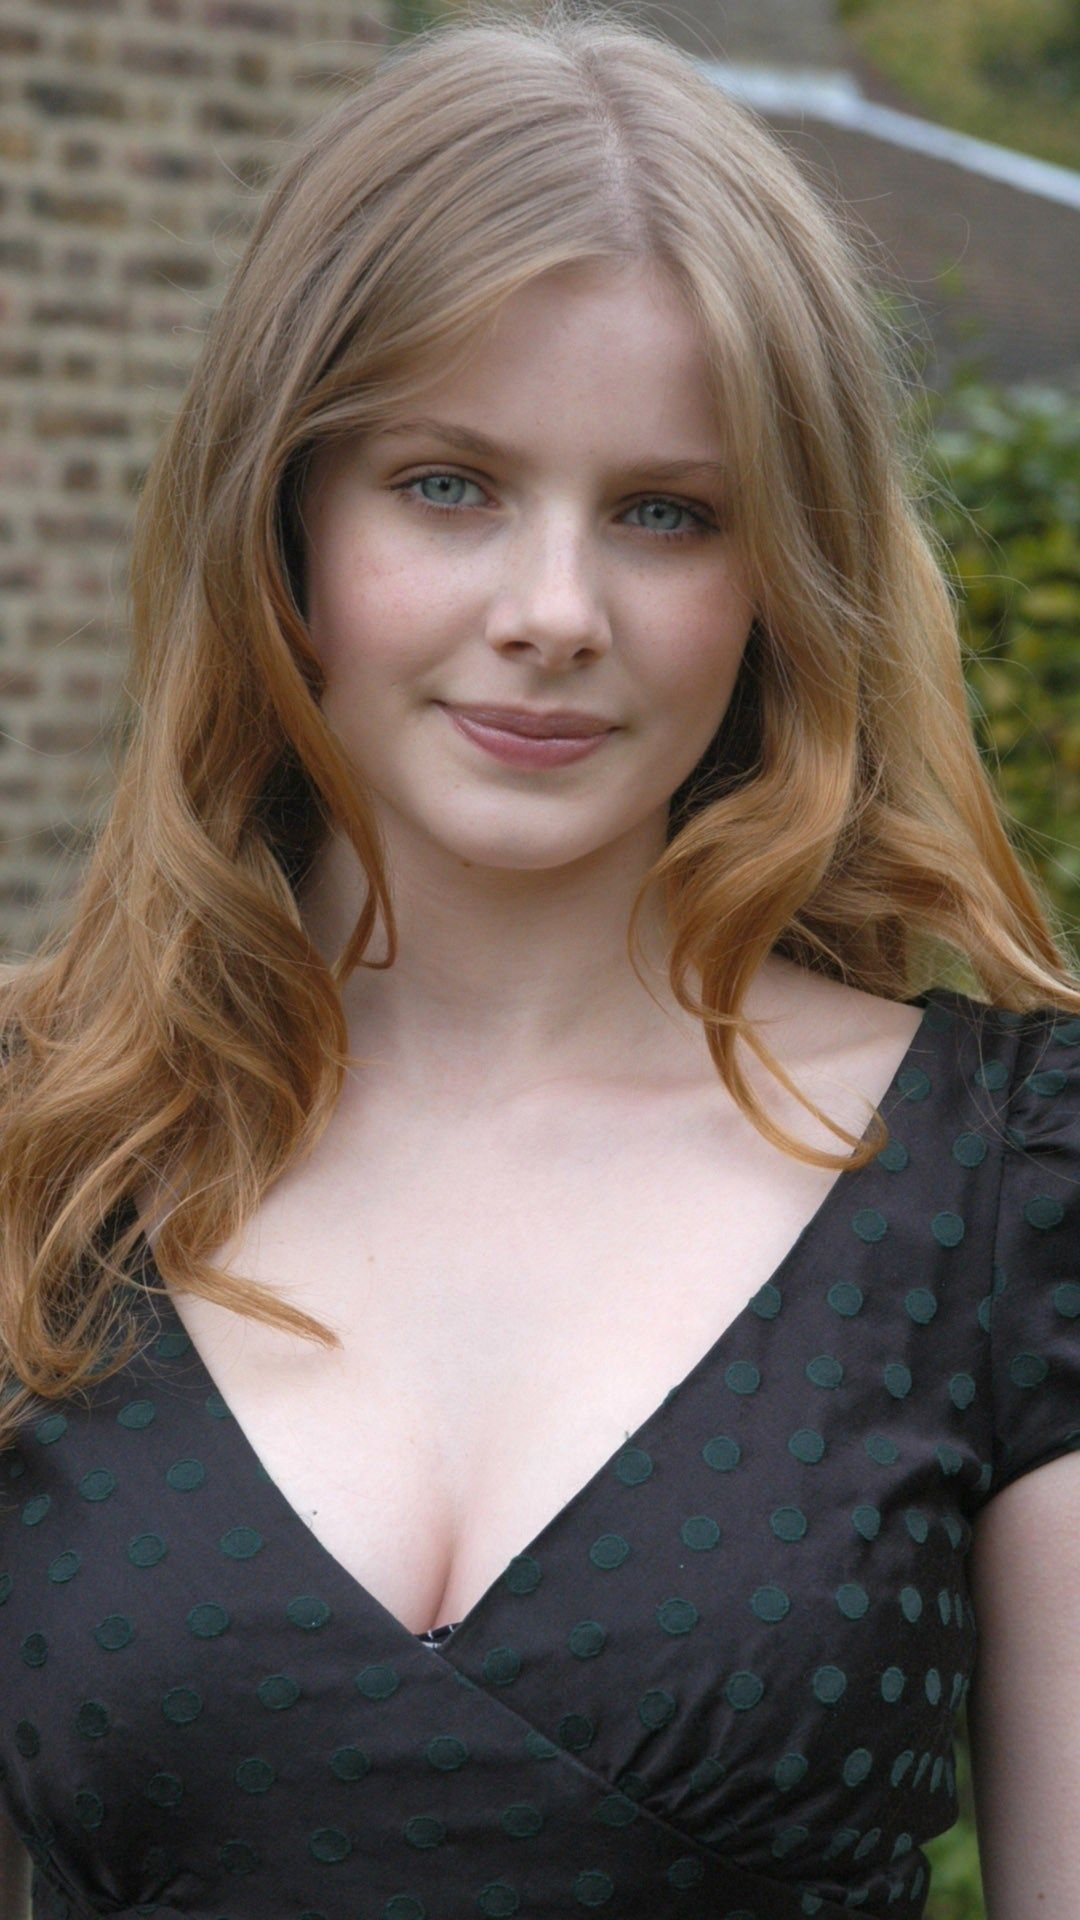 49 Hot Pictures Of Rachel Hurd Wood Which Will Make You